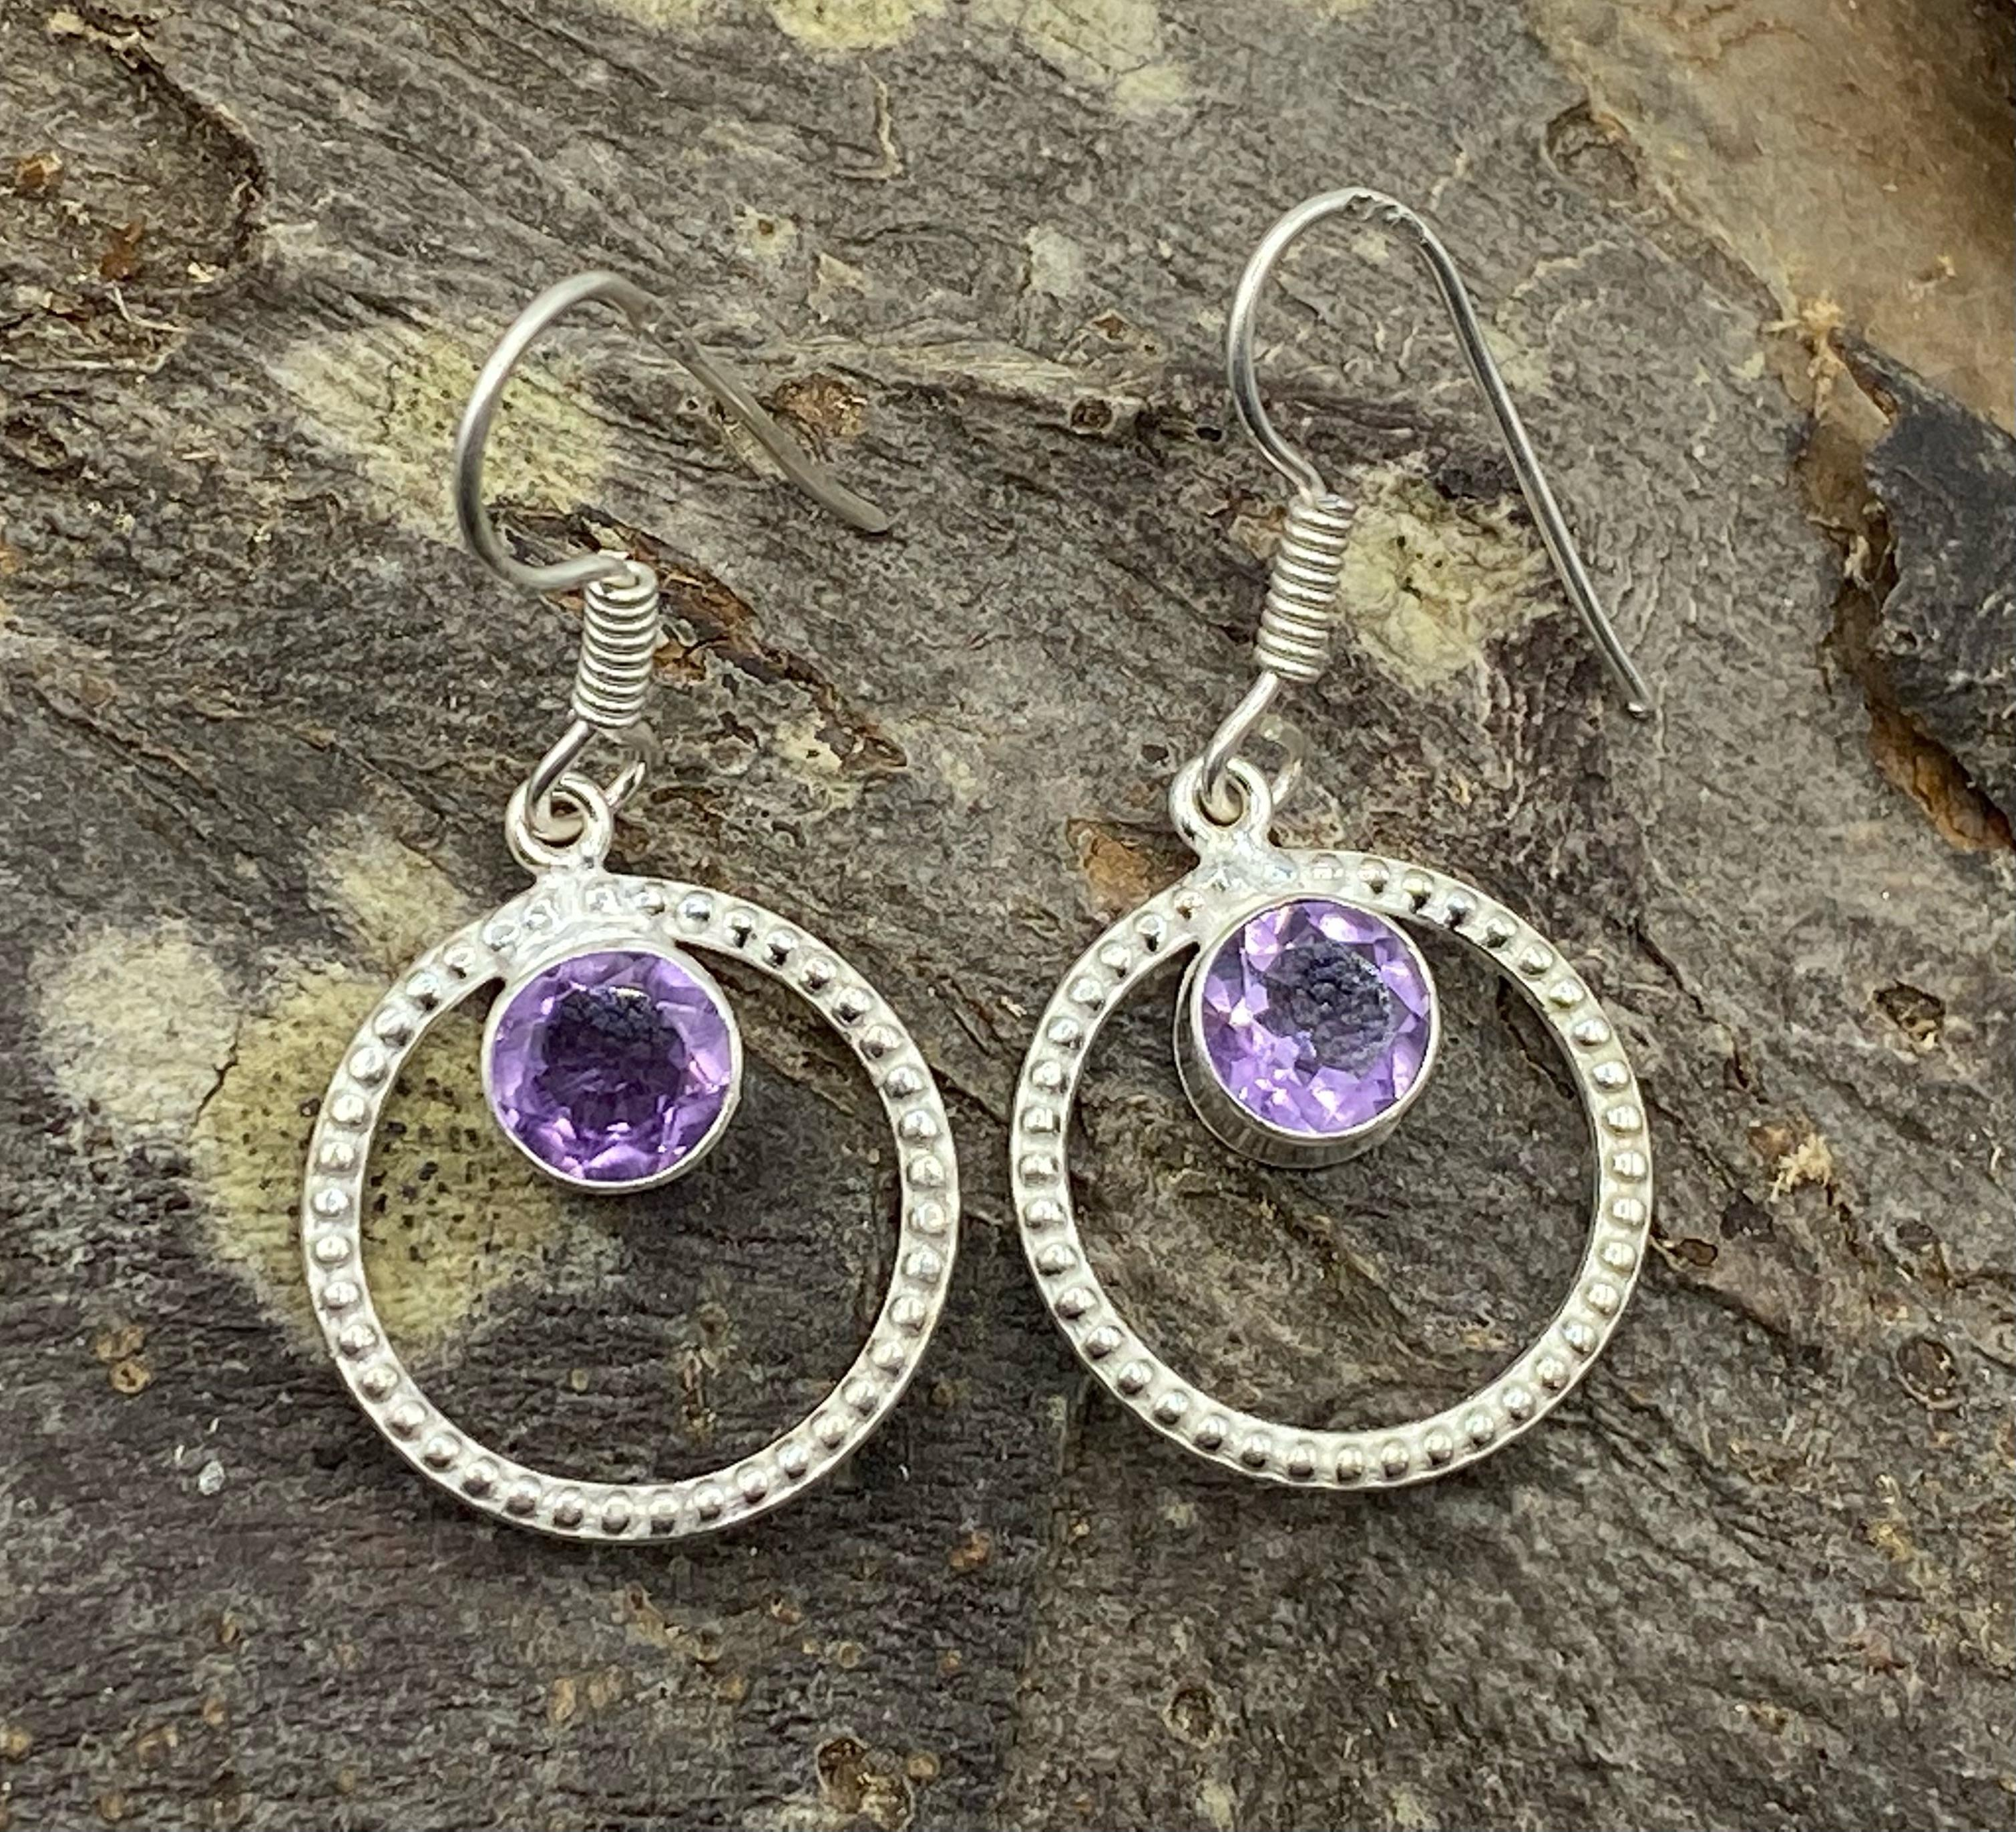 Silver Circular Earrings with Faceted Amethyst Cabochon